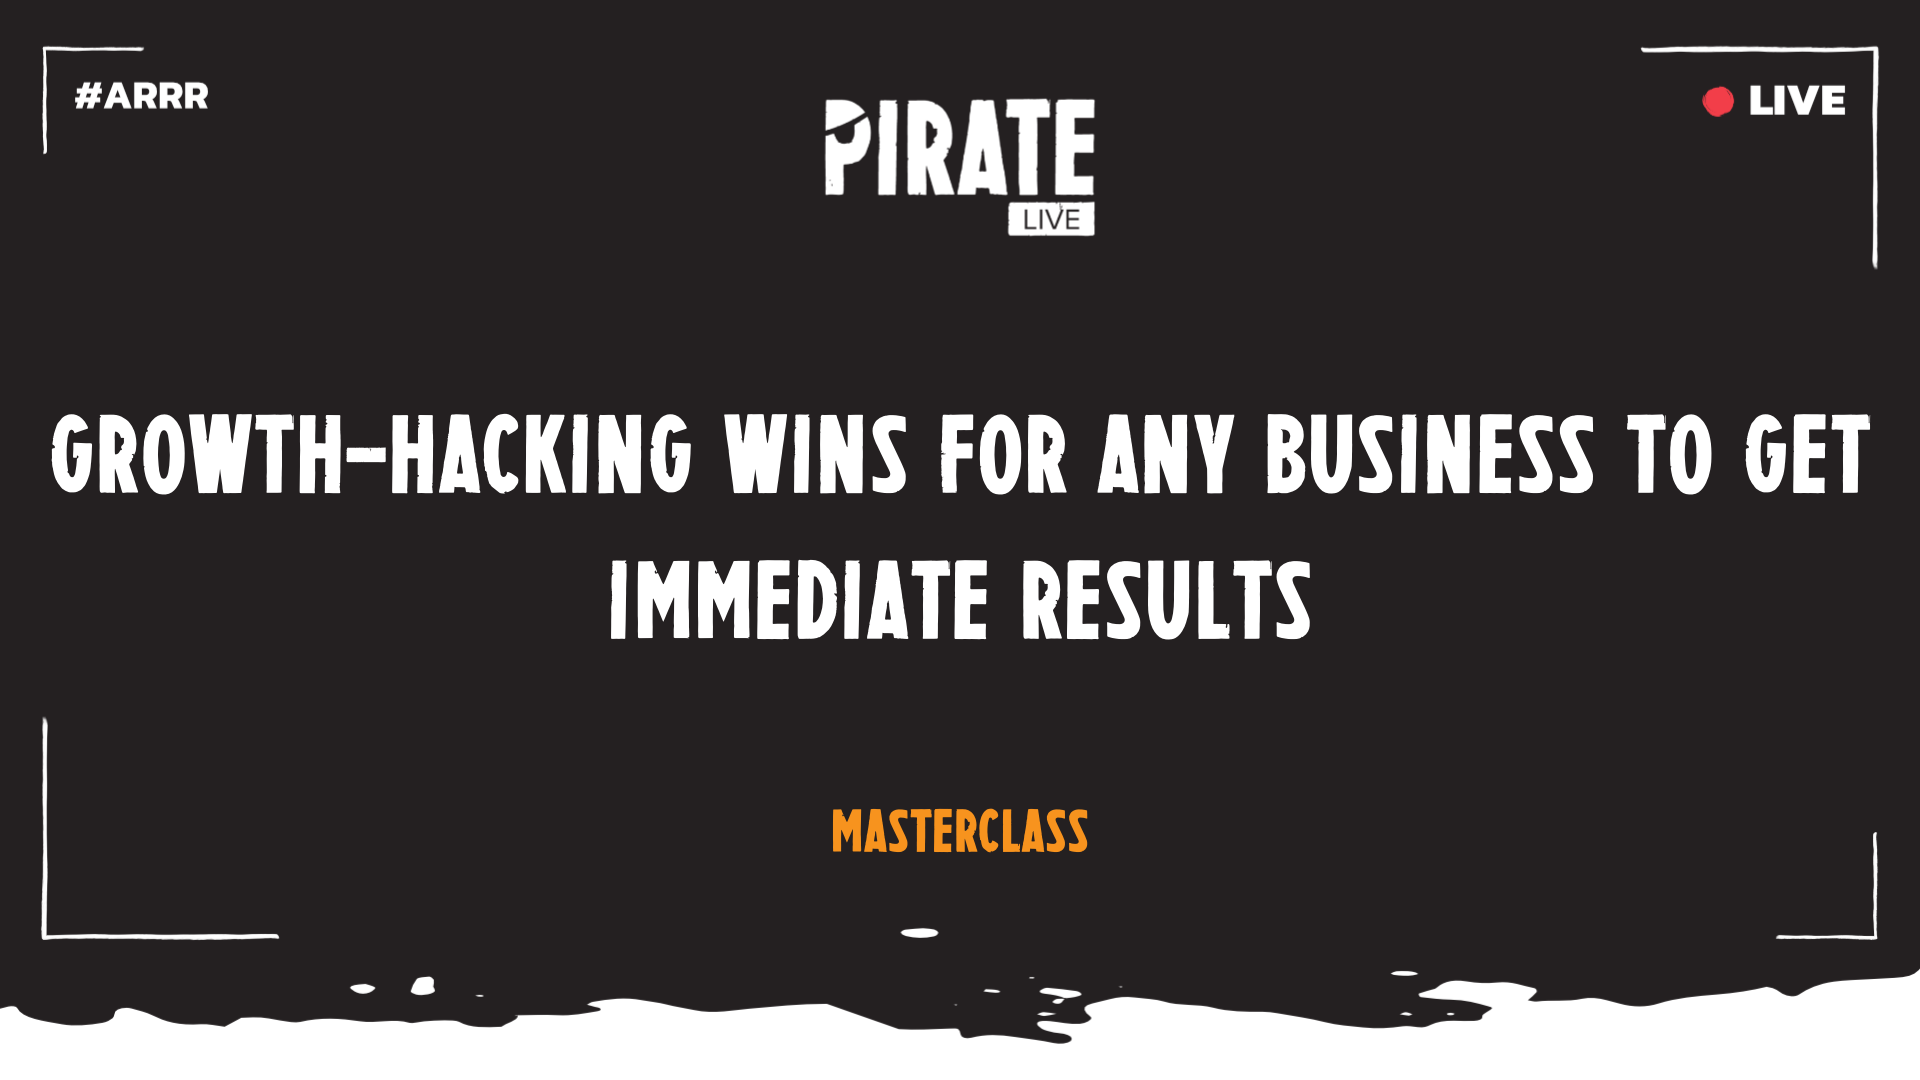 Growth-hacking wins for any business to get immediate results